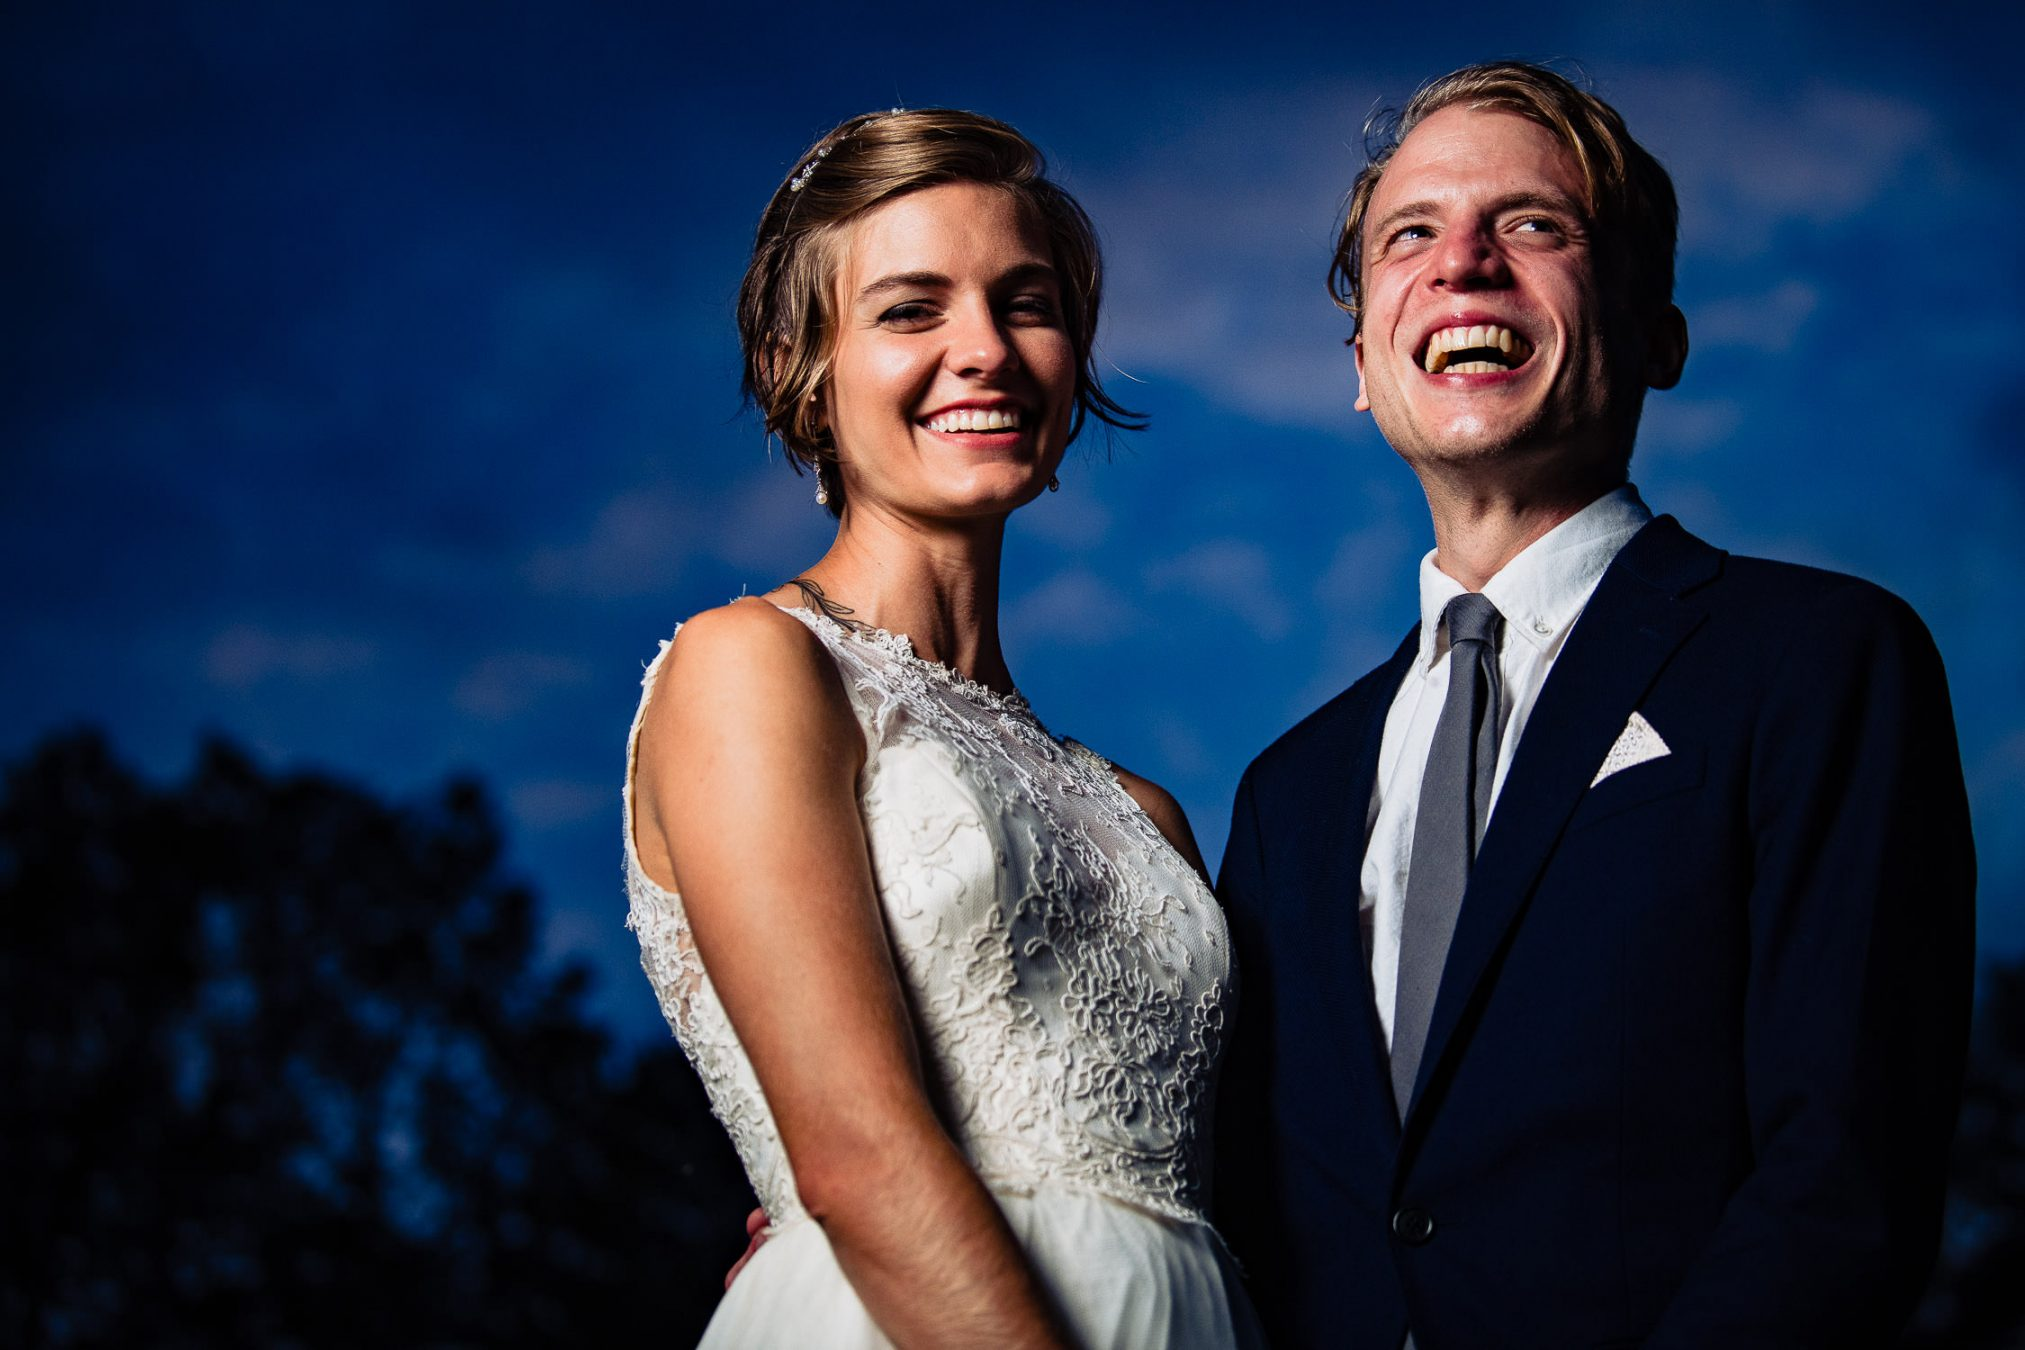 bride and groom portrait at blue hour